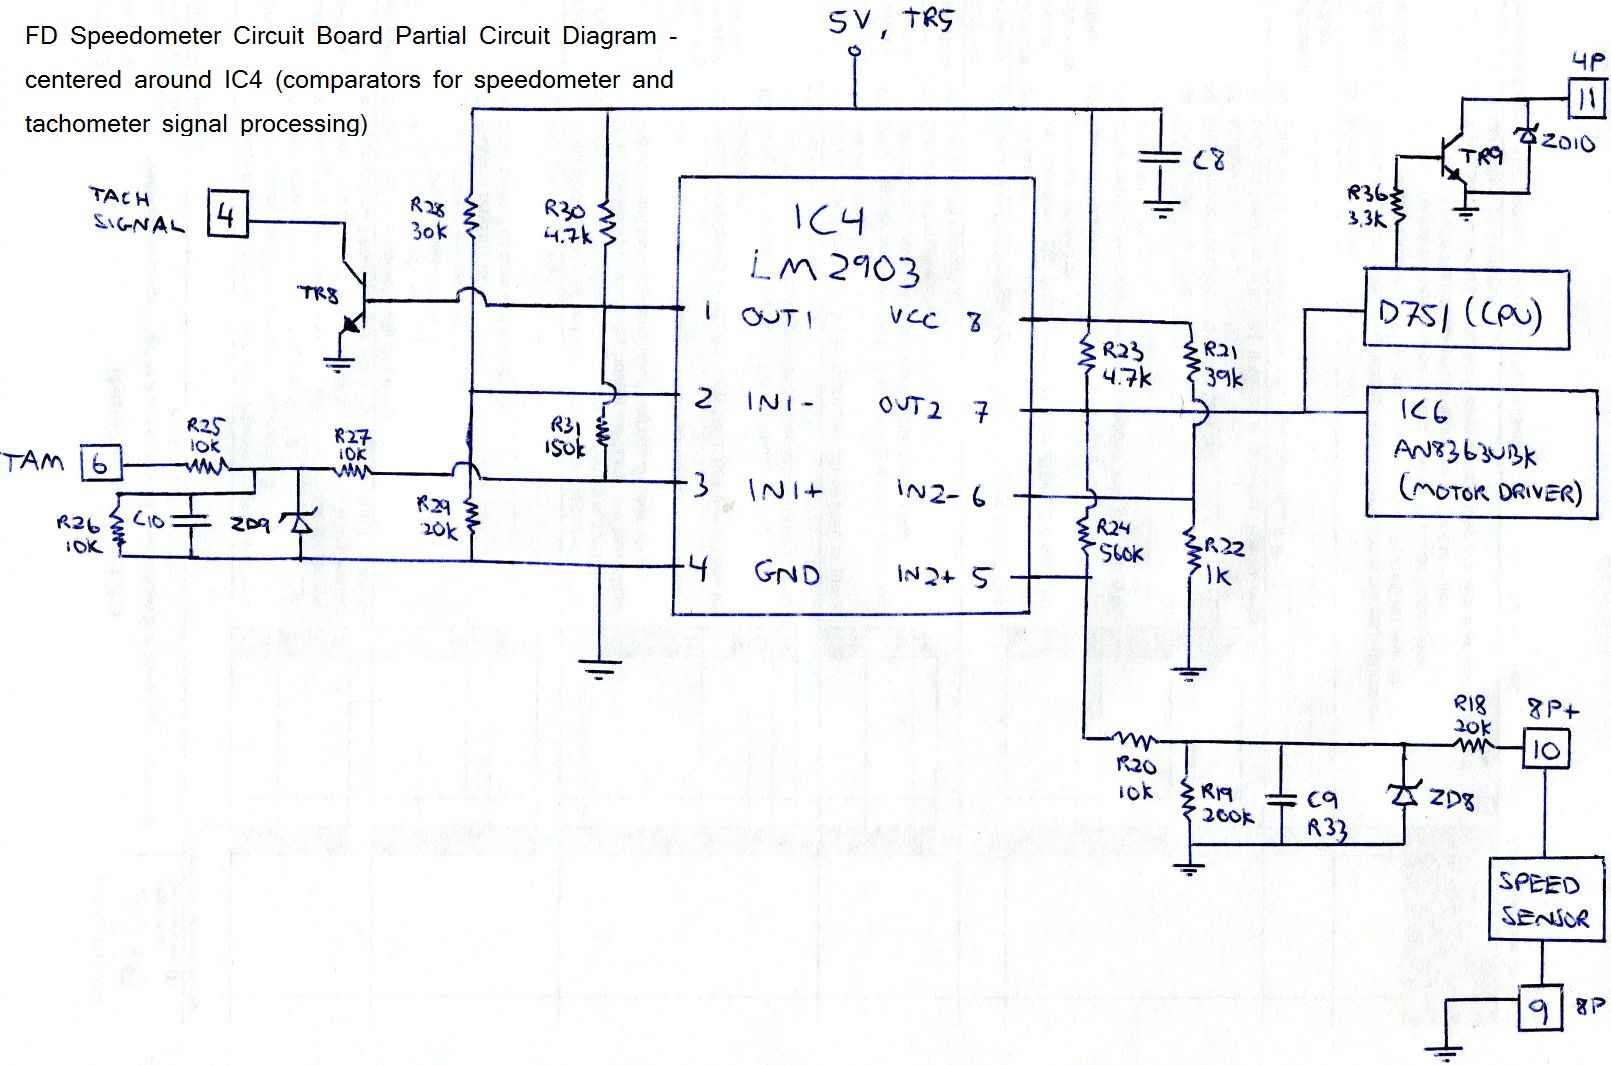 80 fd_speedo_board_ic4_circuit_diagram_2_dfbb9440642ecb893669d864e4bb48db68f57ffe extremely simple fd tach odometer repair rx7club com mazda 1991 Rx7 Wiring-Diagram at bayanpartner.co